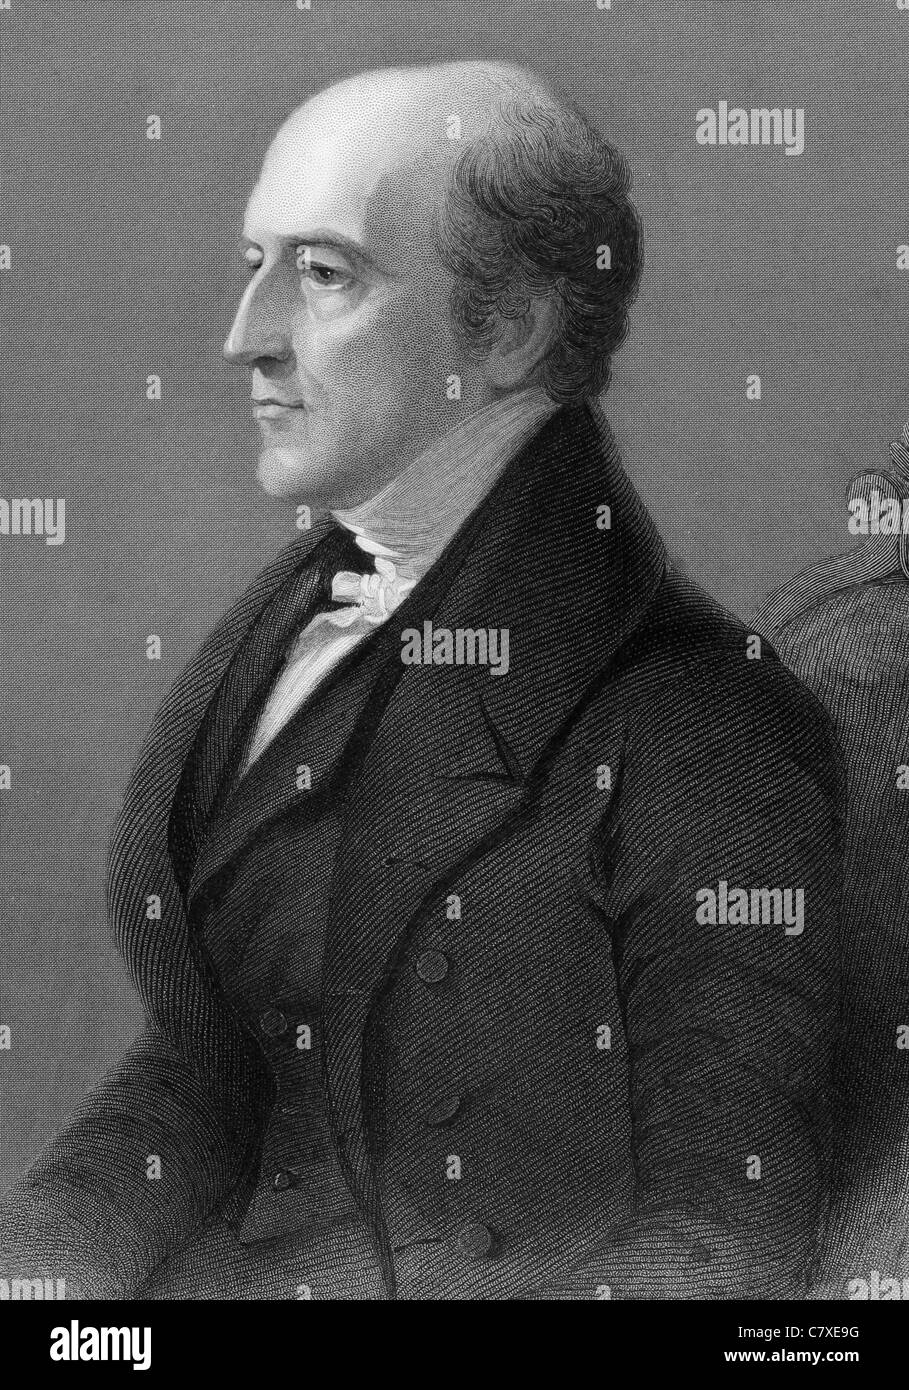 Thomas Langlois Lefroy (1776-1869) on engraving from 1800s. Irish-Huguenot politician and judge. - Stock Image